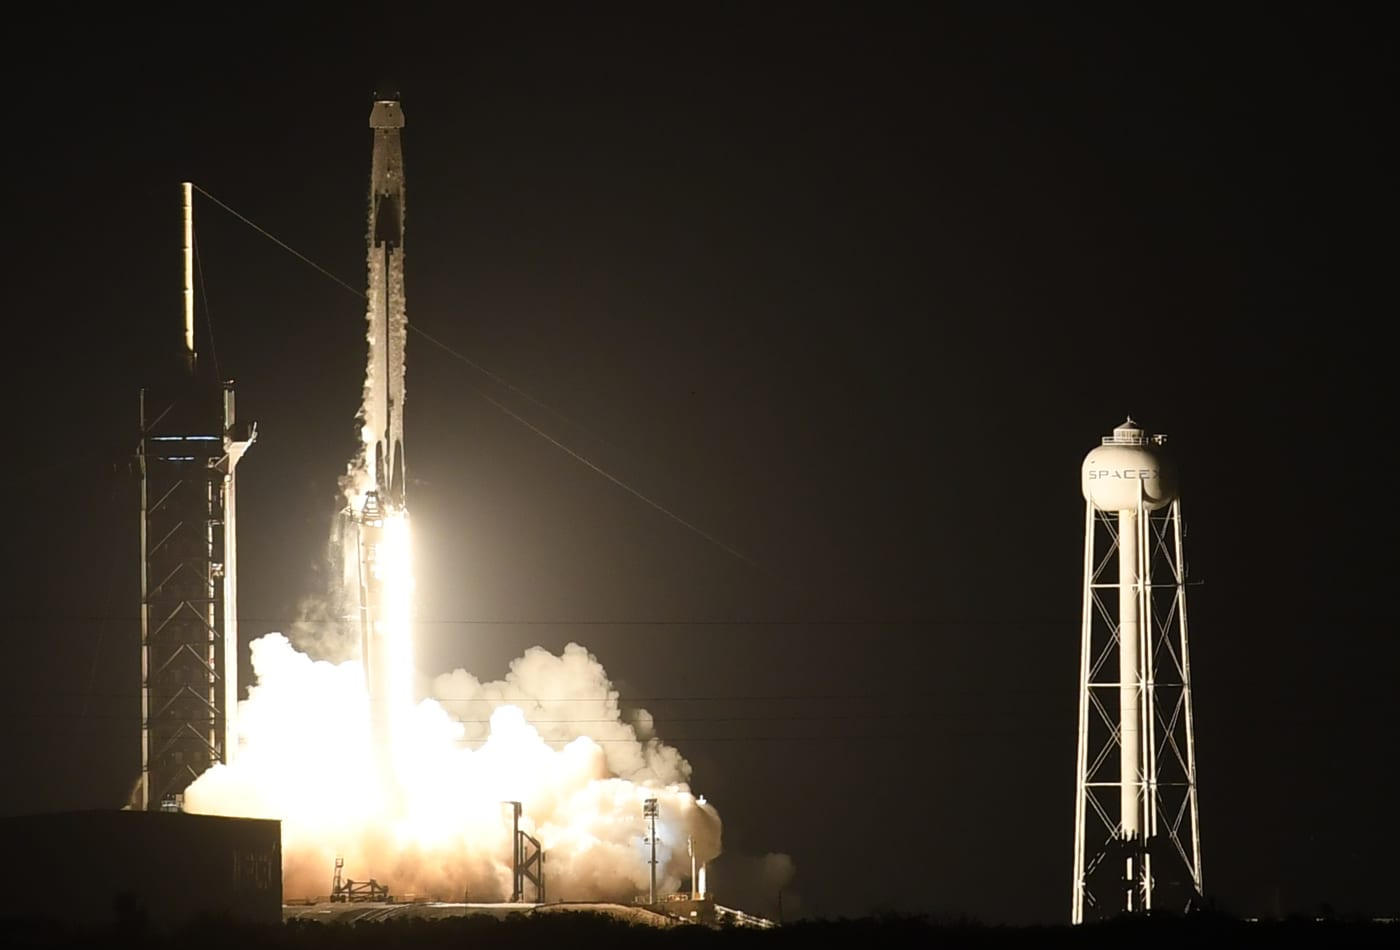 Elon Musk's SpaceX launches Crew-1 mission, beginning a new era of NASA human spaceflight